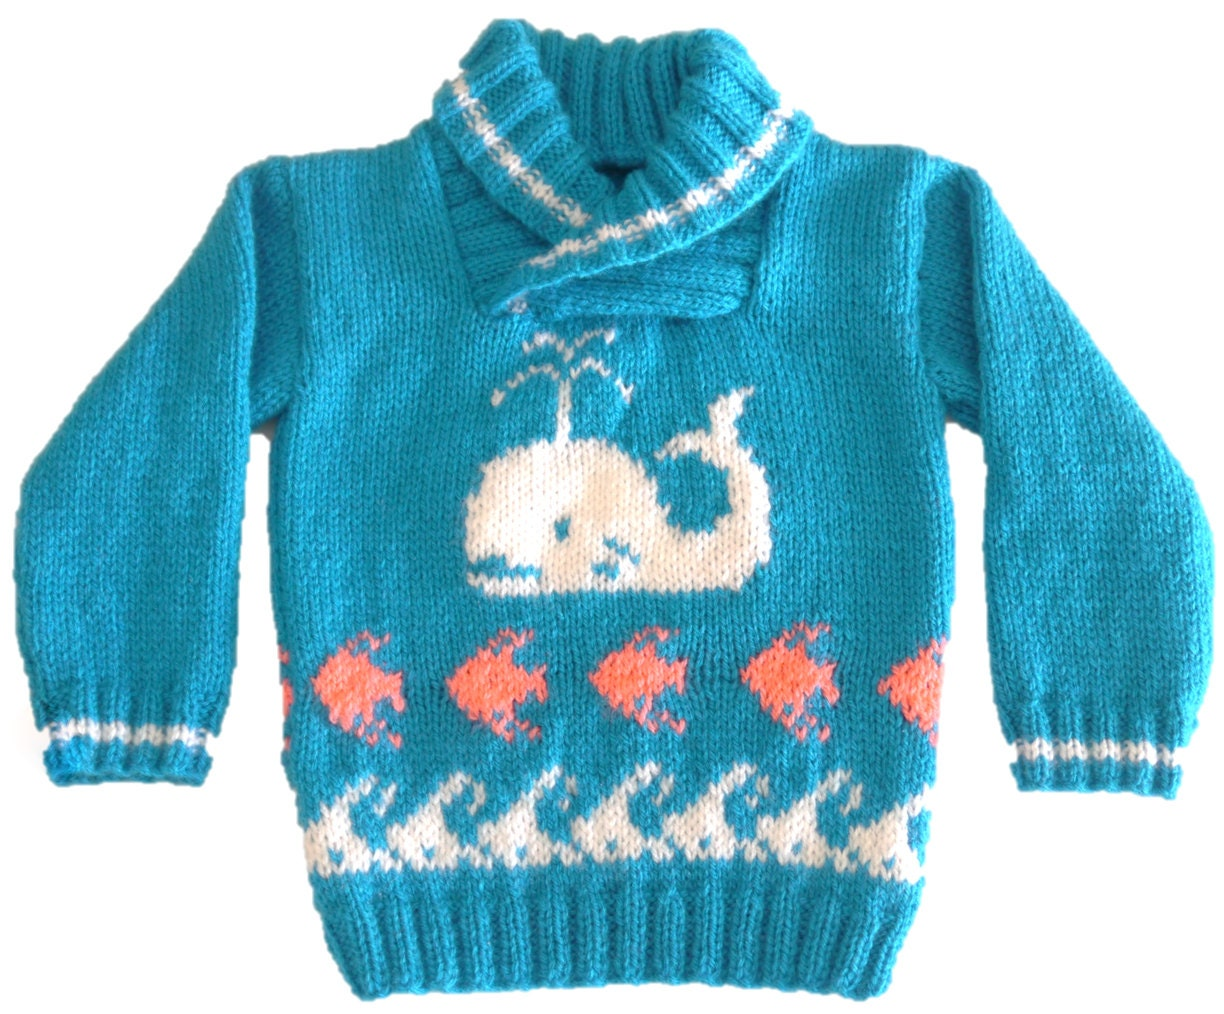 Knitting Pattern for Sweater with Whale Fish and Waves